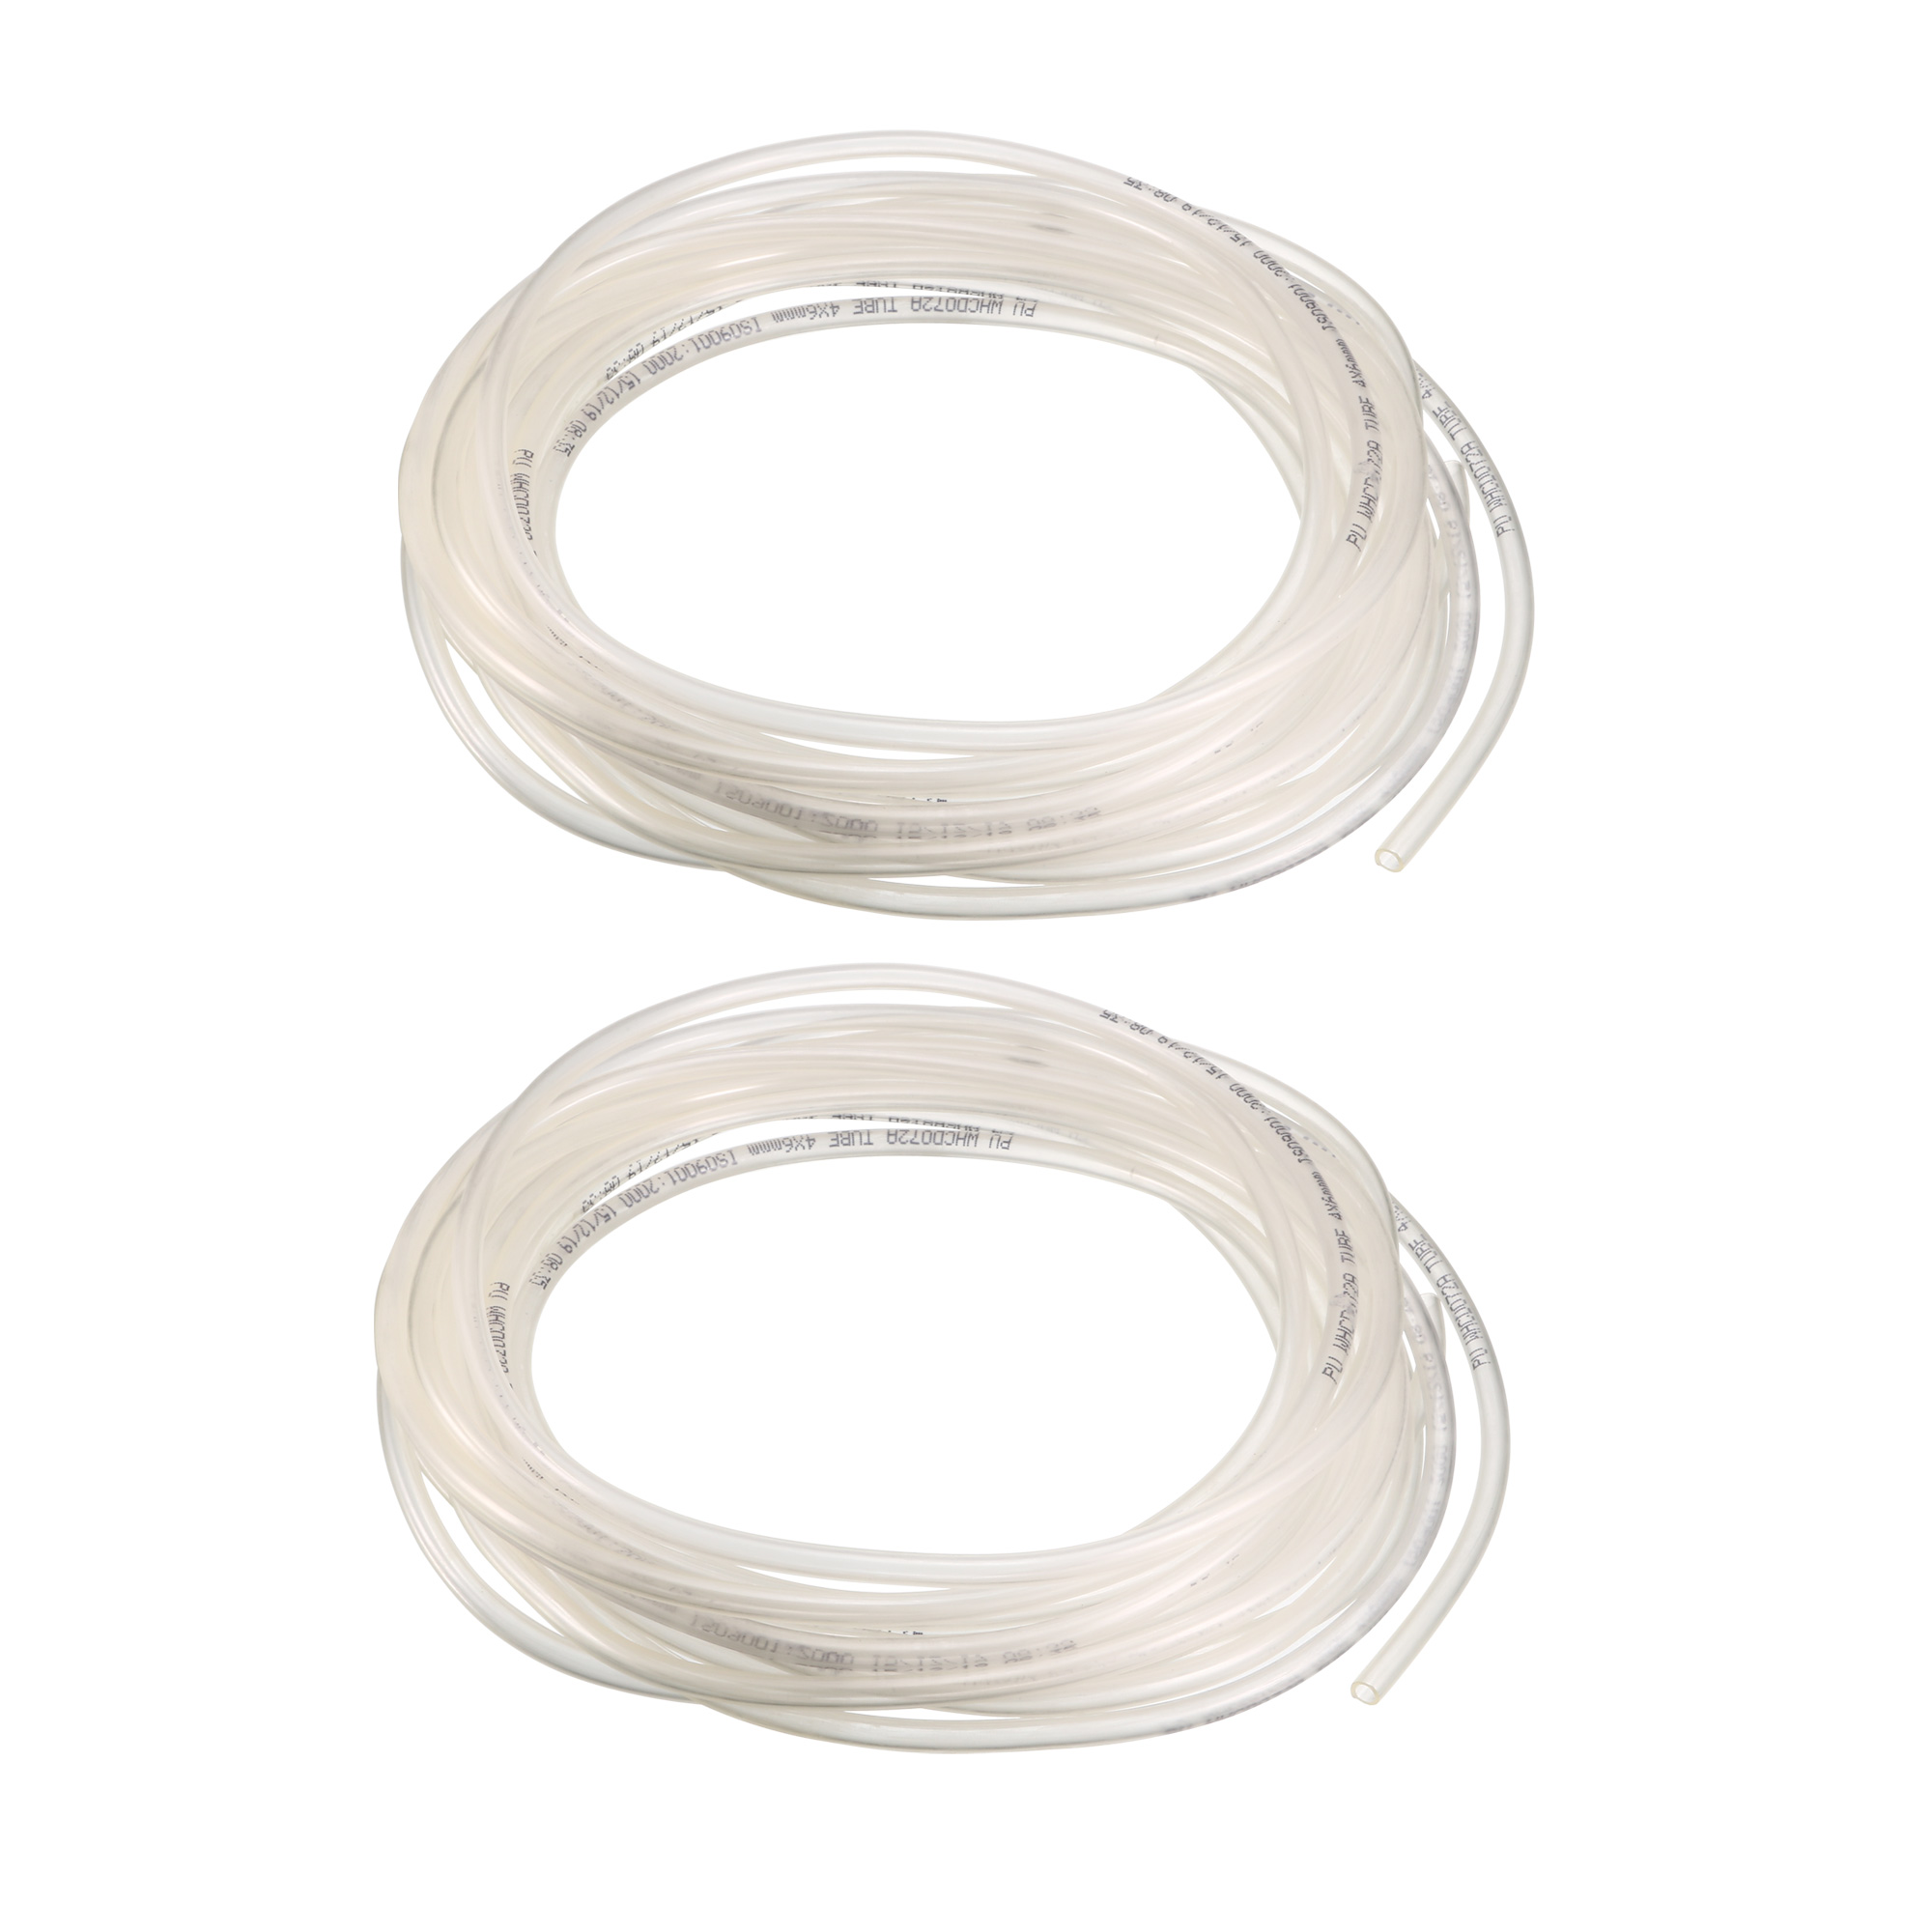 2pcs 7.6M 25ft Long Clear Polyurethane Flexible Air Tube PU Tubing Pneumatic Pipe Hose 6mmx4mm